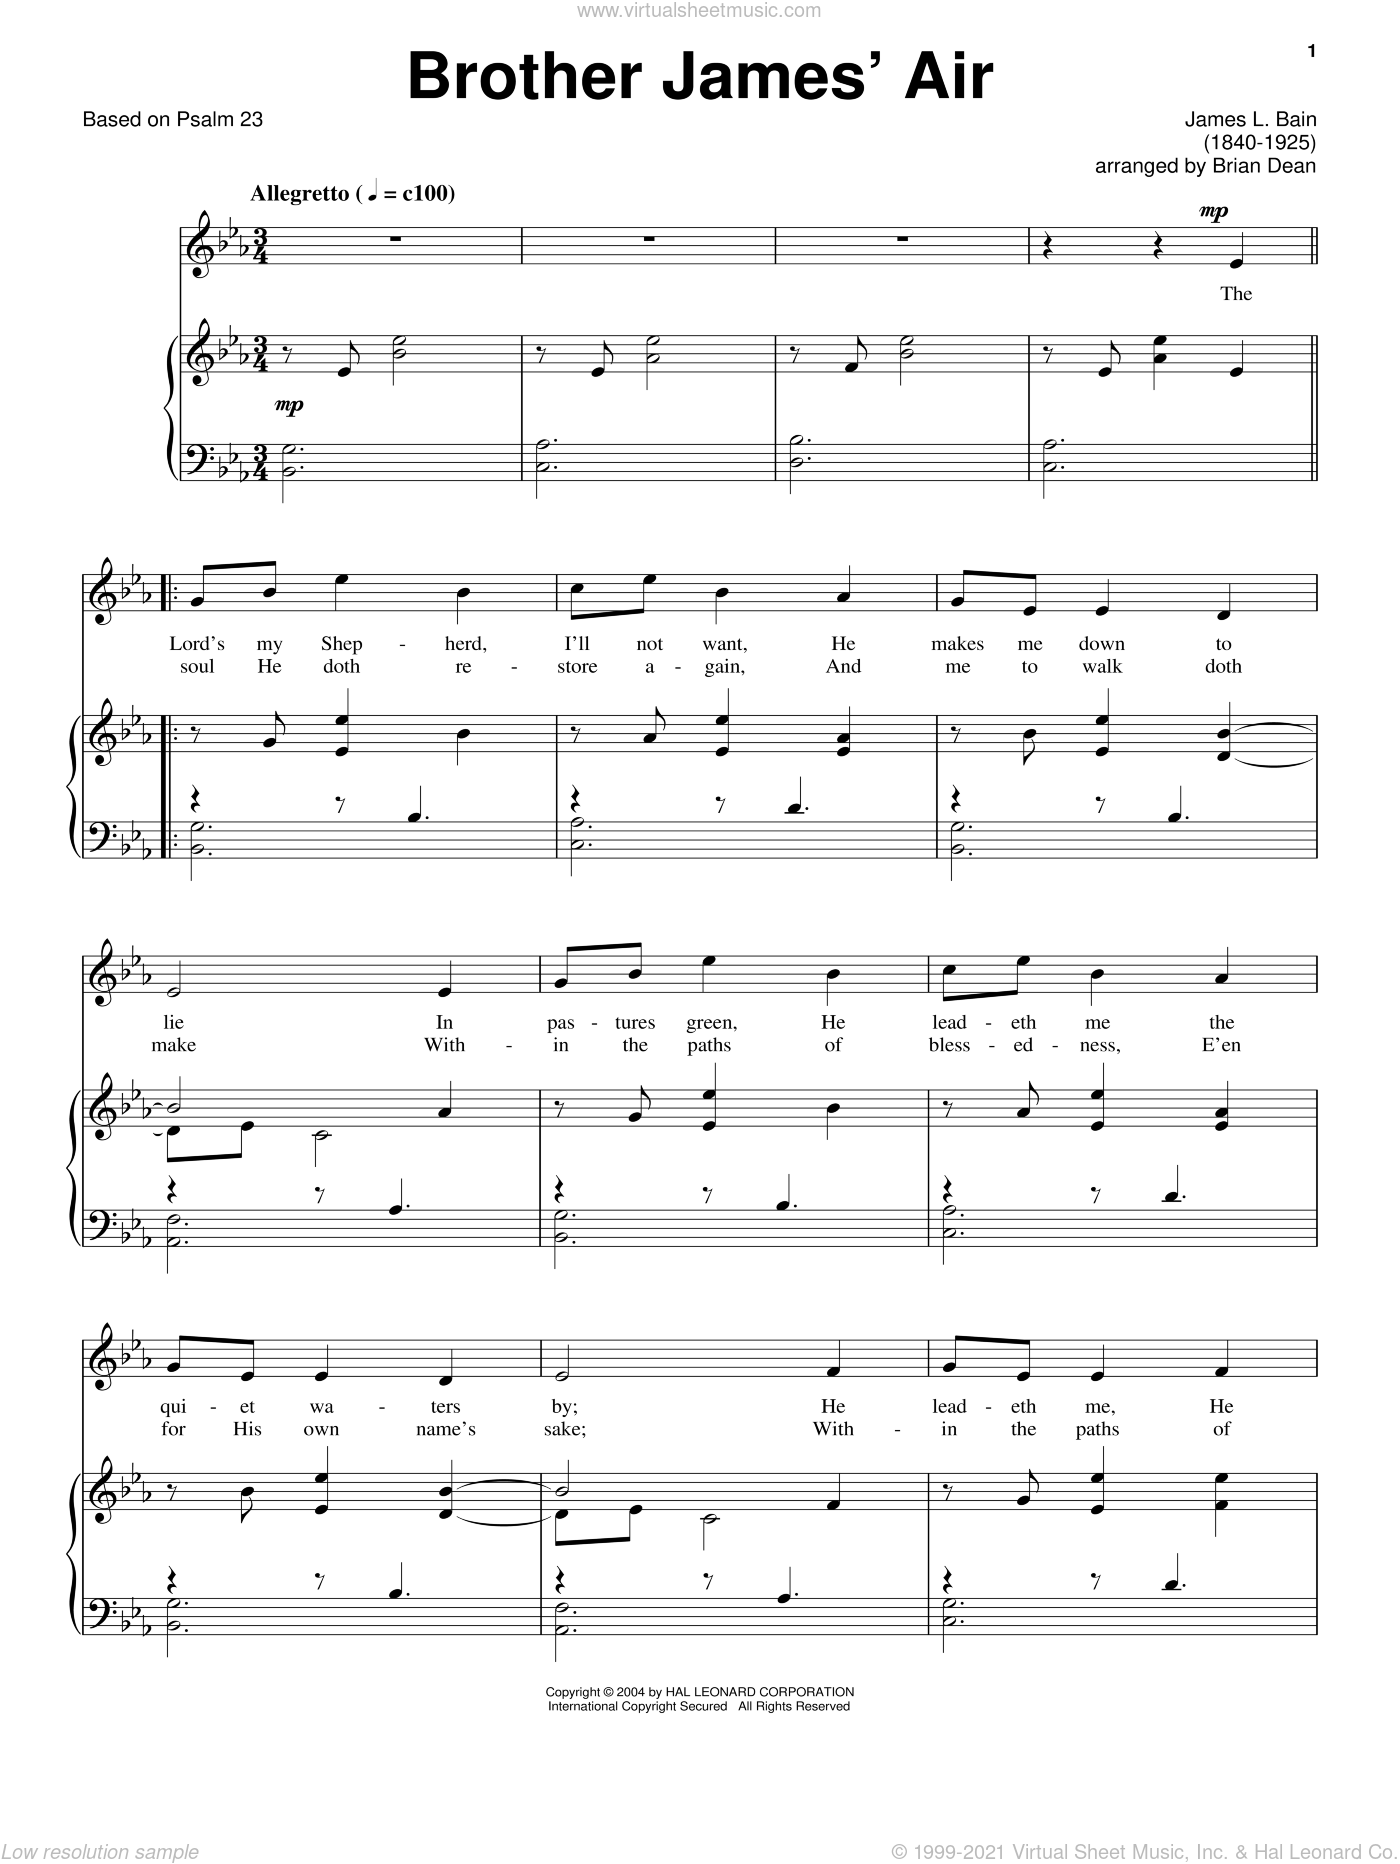 Brother James' Air sheet music for voice and piano